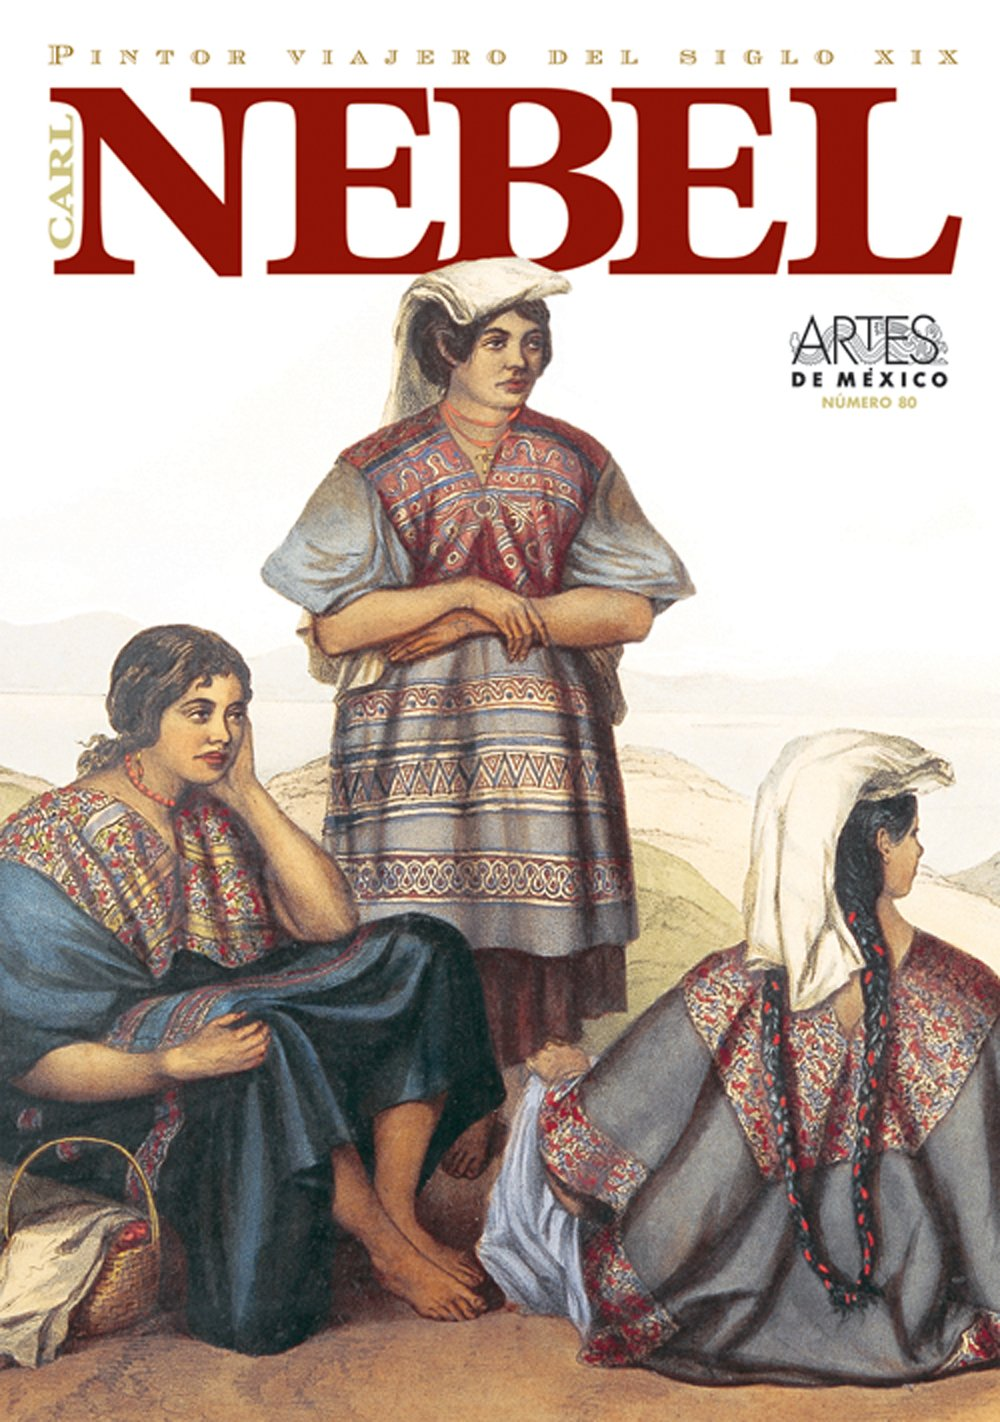 Carl Nebel, Pintor viajero del siglo XIX (Carl Nebel, XIX Century Itinerant Painter), Artes de Mexico # 80 (Bilingual edition: Spanish/English) (Spanish Edition) pdf epub